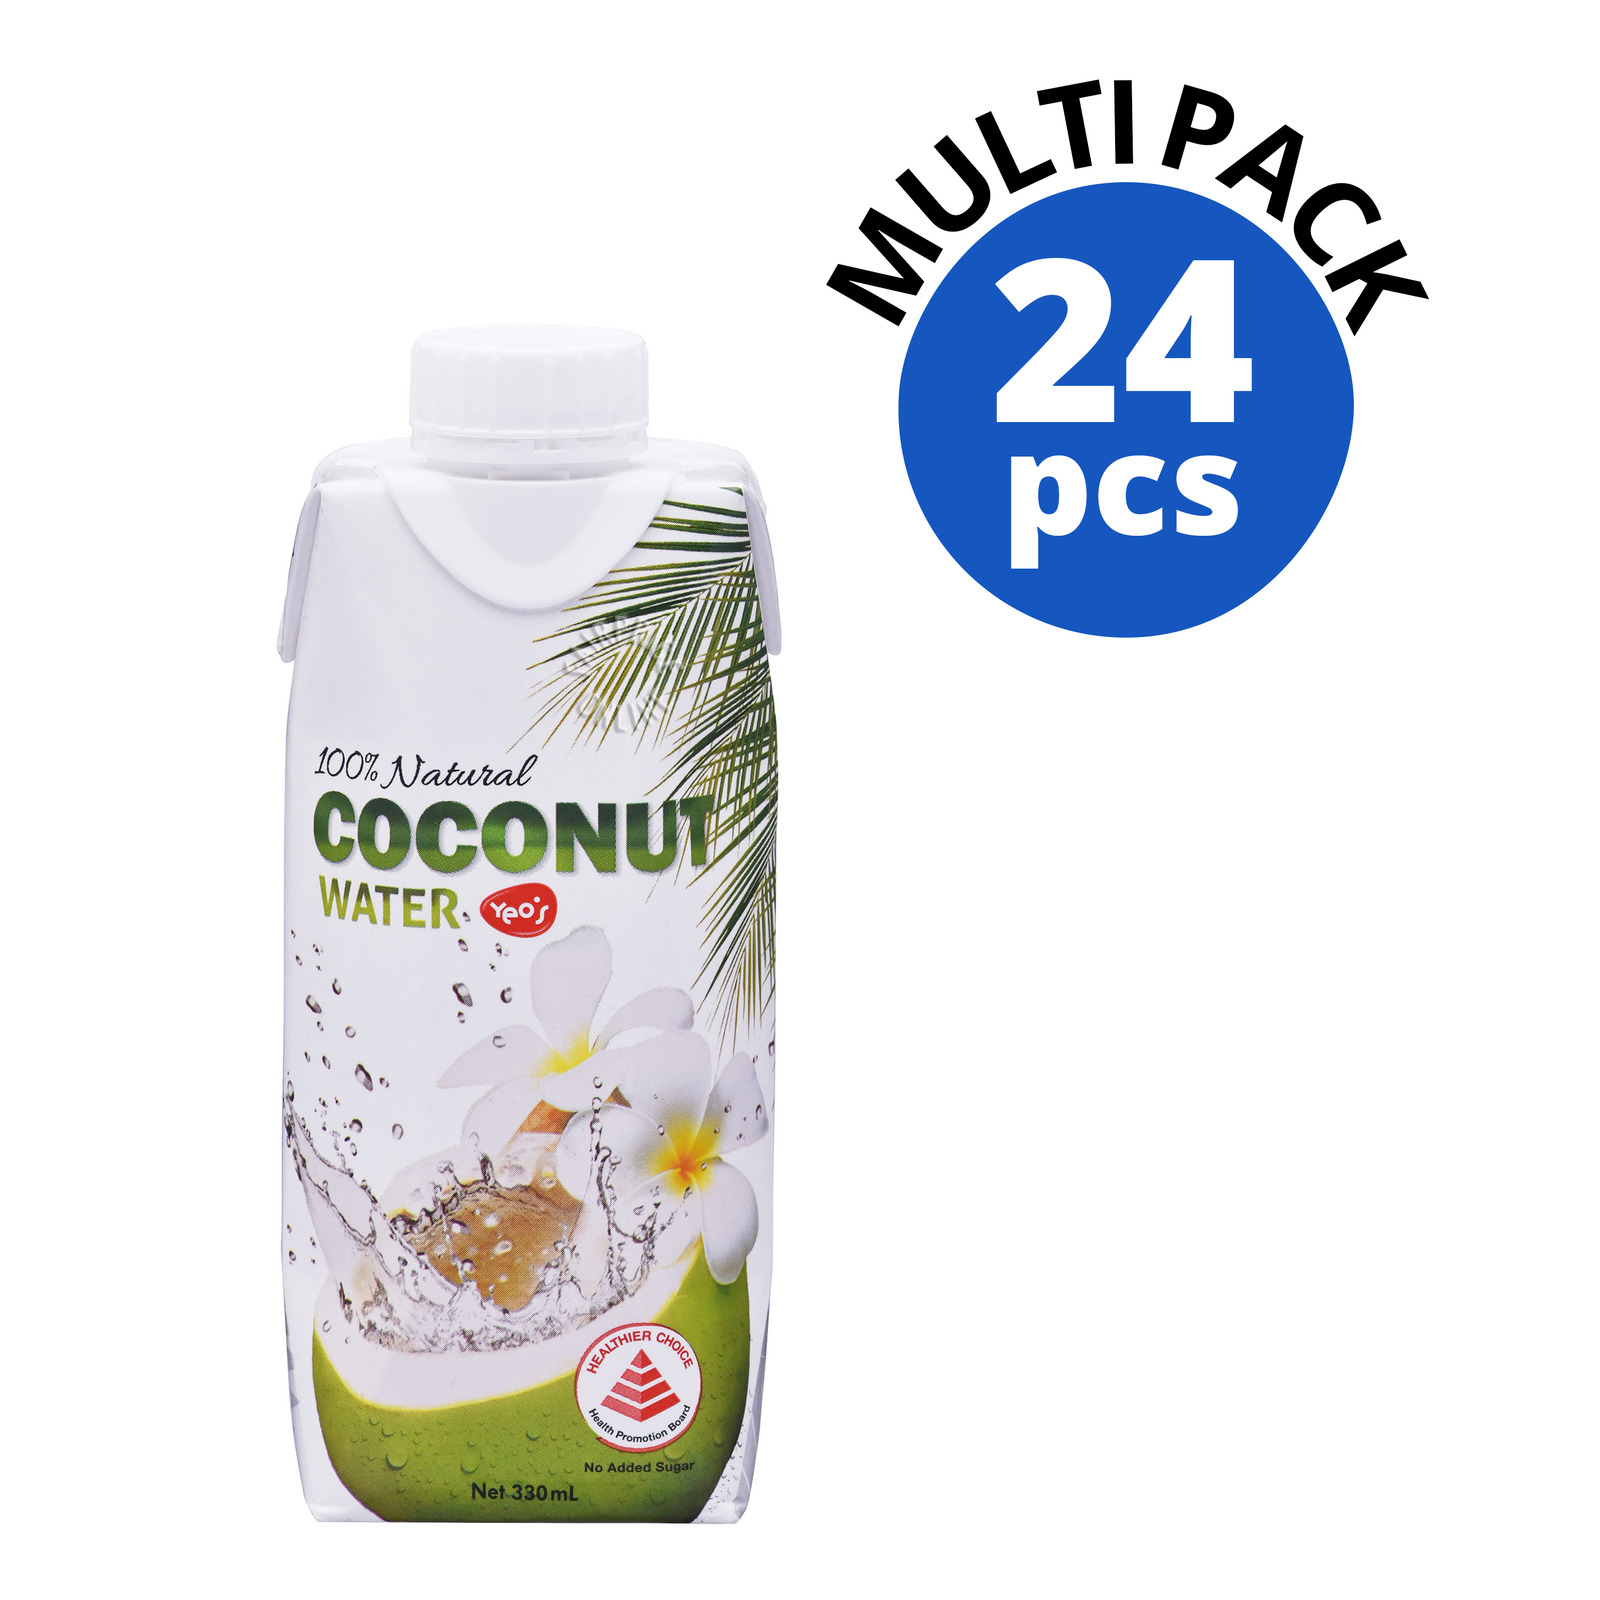 Yeo's 100% Natural Coconut Packet Water